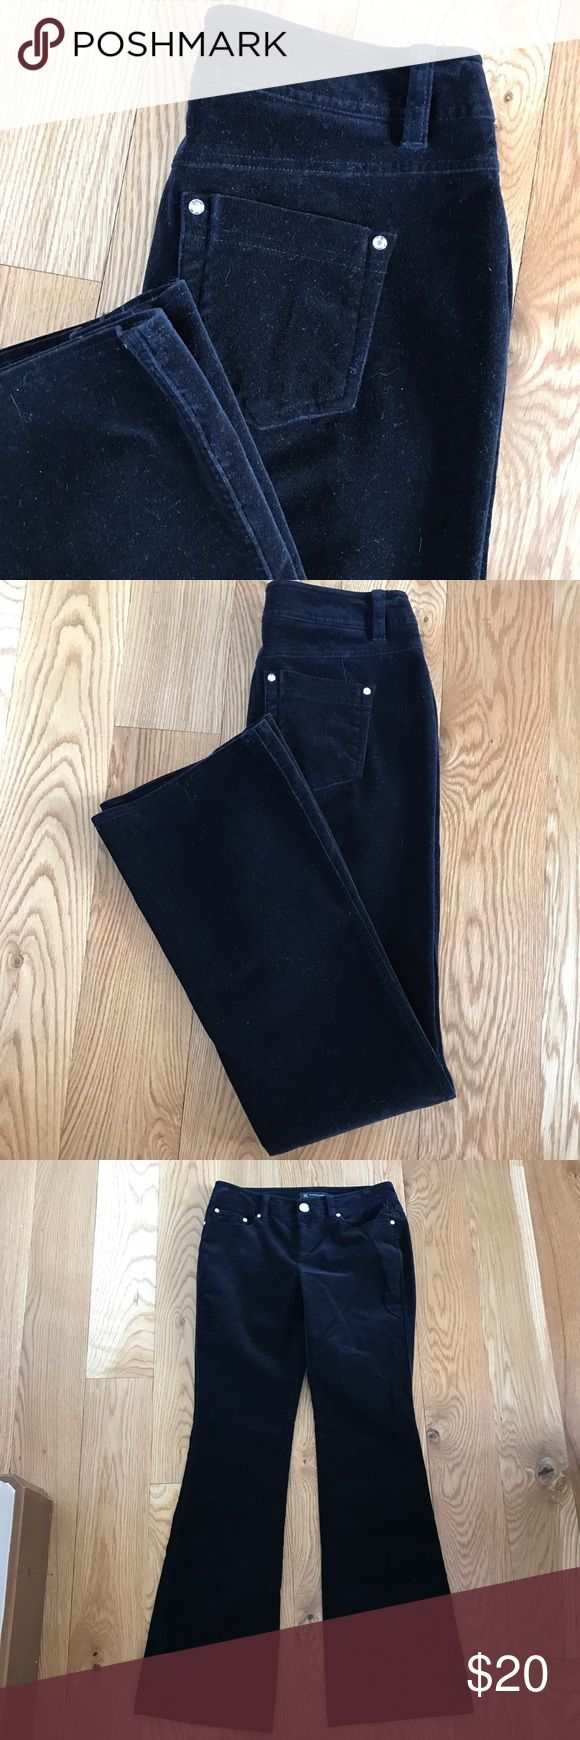 """LIKE NEW INC BLACK VELVET FEEL FLARE JEANS From INC, these jeans feel like velvet with a flare fit and beautiful bling hardware. Front button and zipper, 5-pocket style and slightly flared leg. 98% cotton and 2% spandex for awesome fit. size 4. 14"""" waist, 10"""" rise, 32"""" inseam. INC International Concepts Jeans Flare & Wide Leg"""